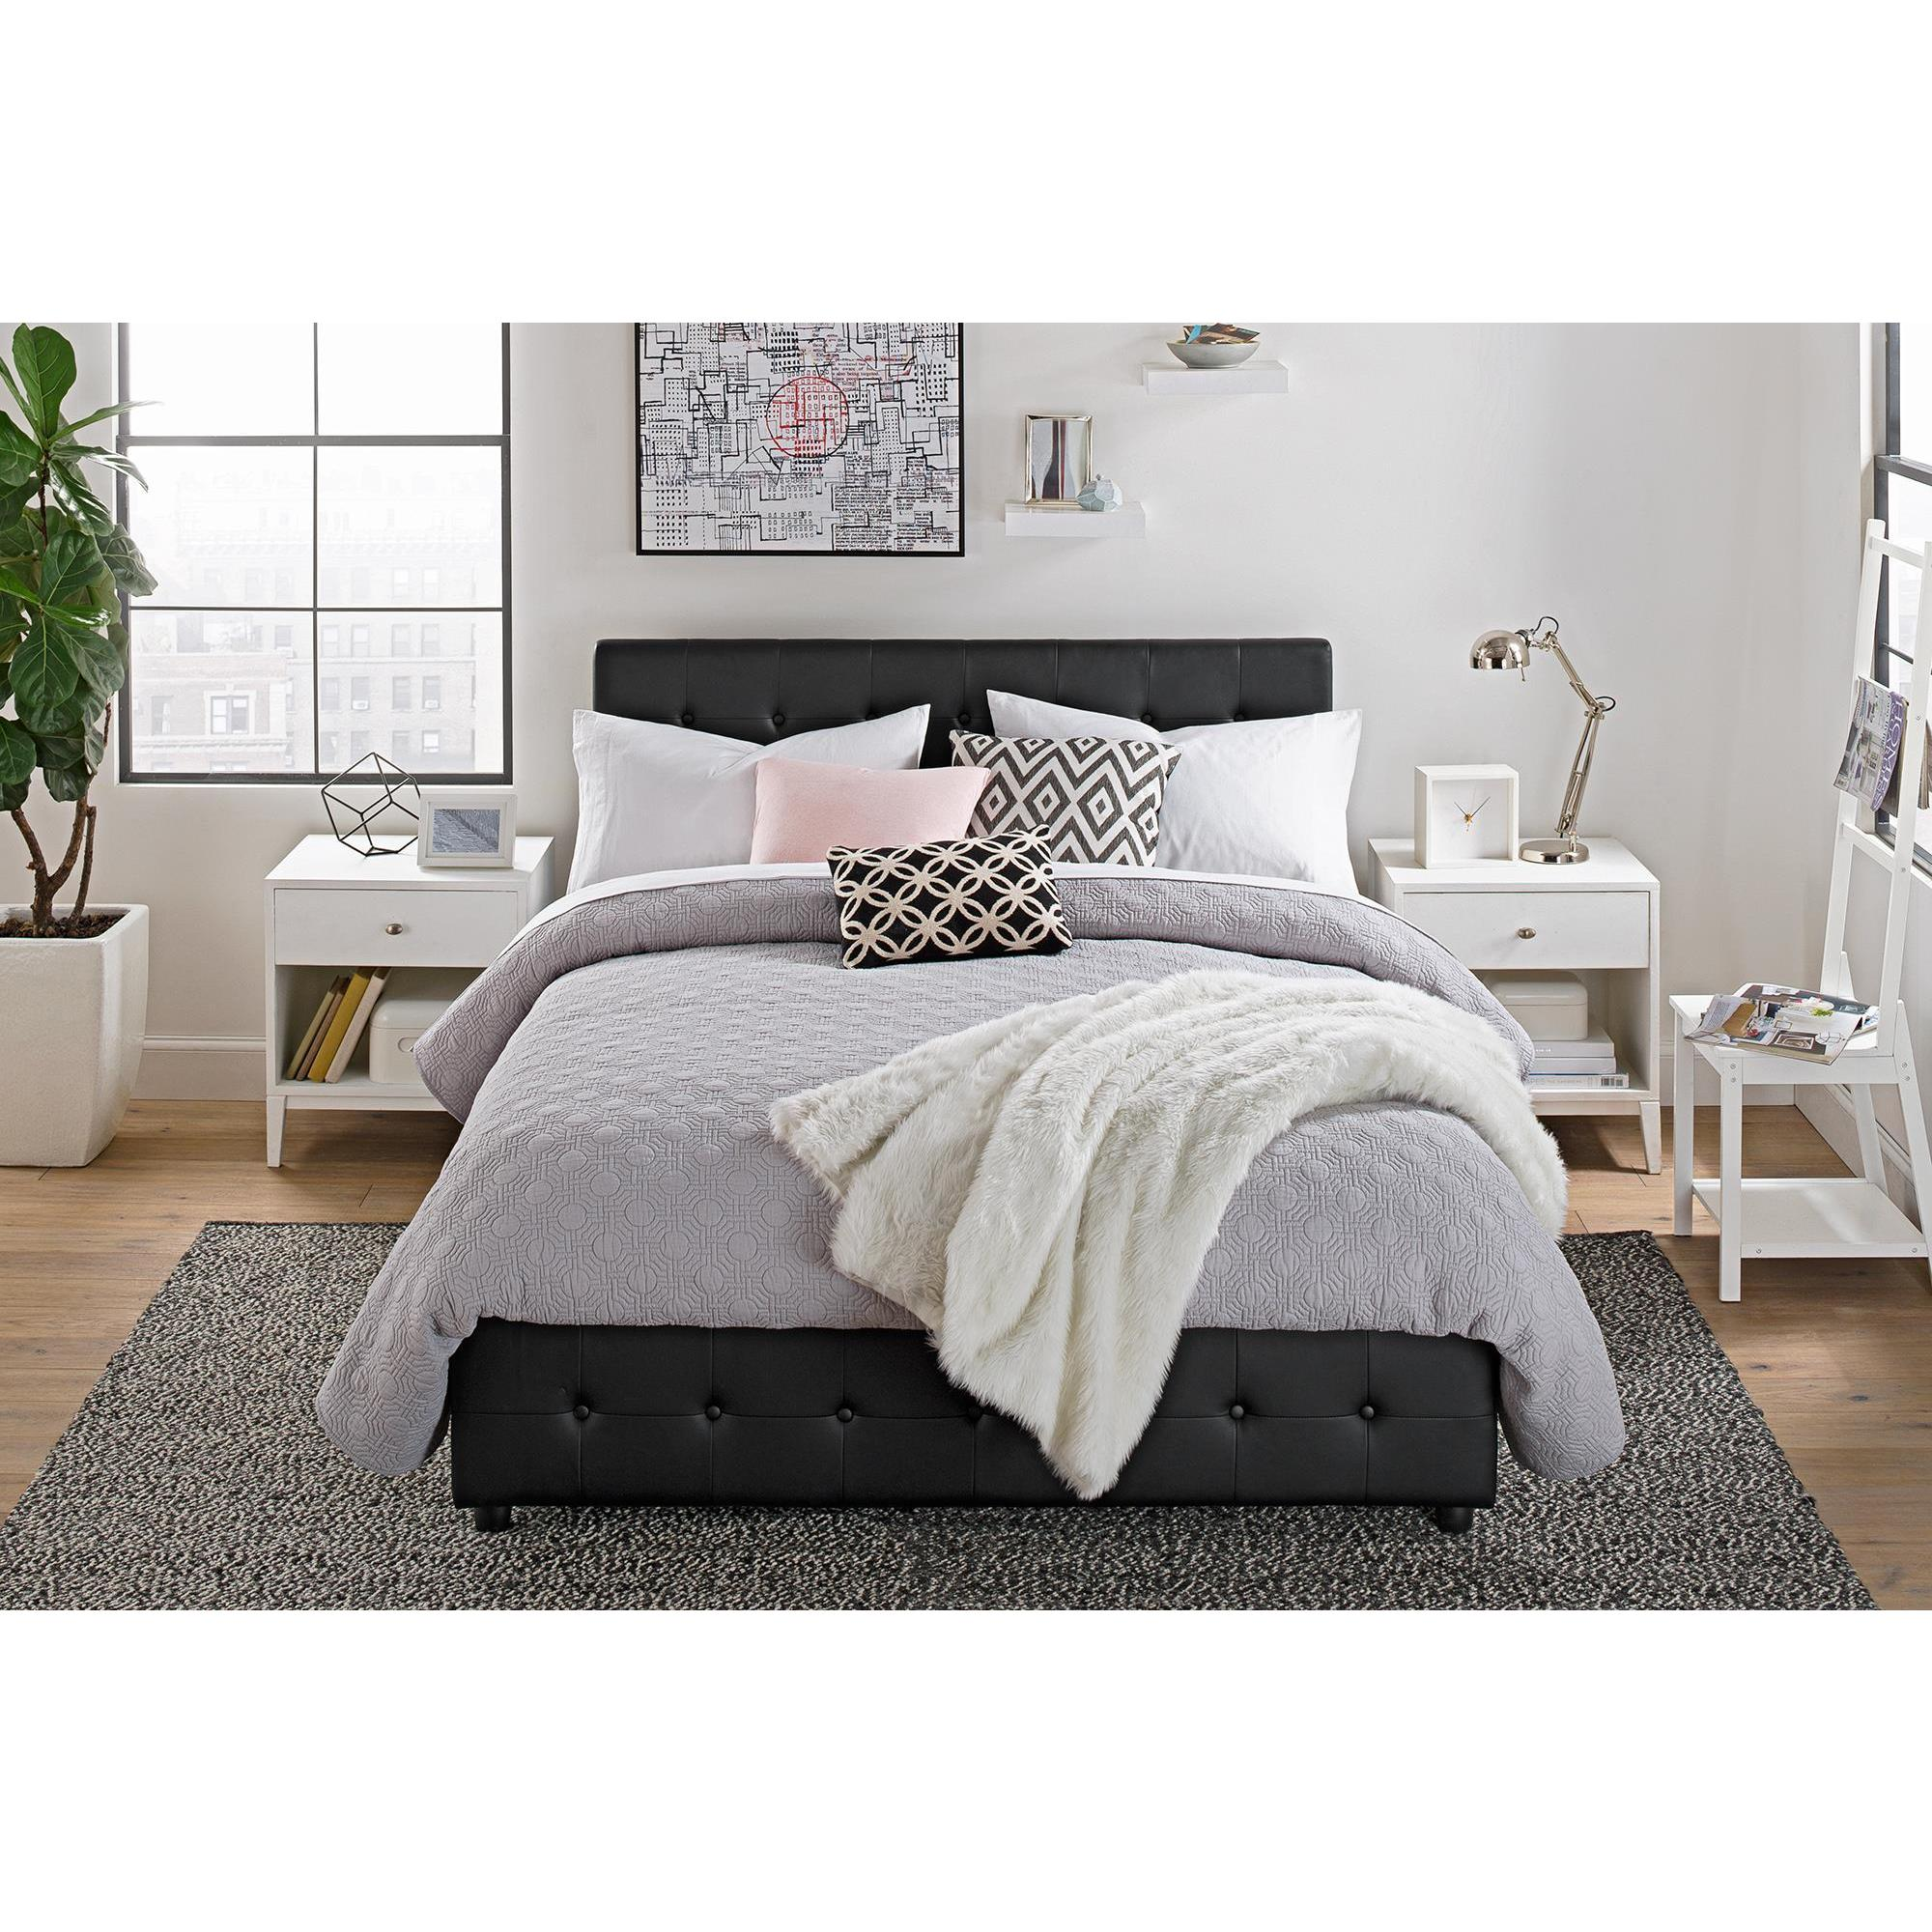 DHP Cambridge Black Faux Leather Upholstered Bed with Storage - Free ...